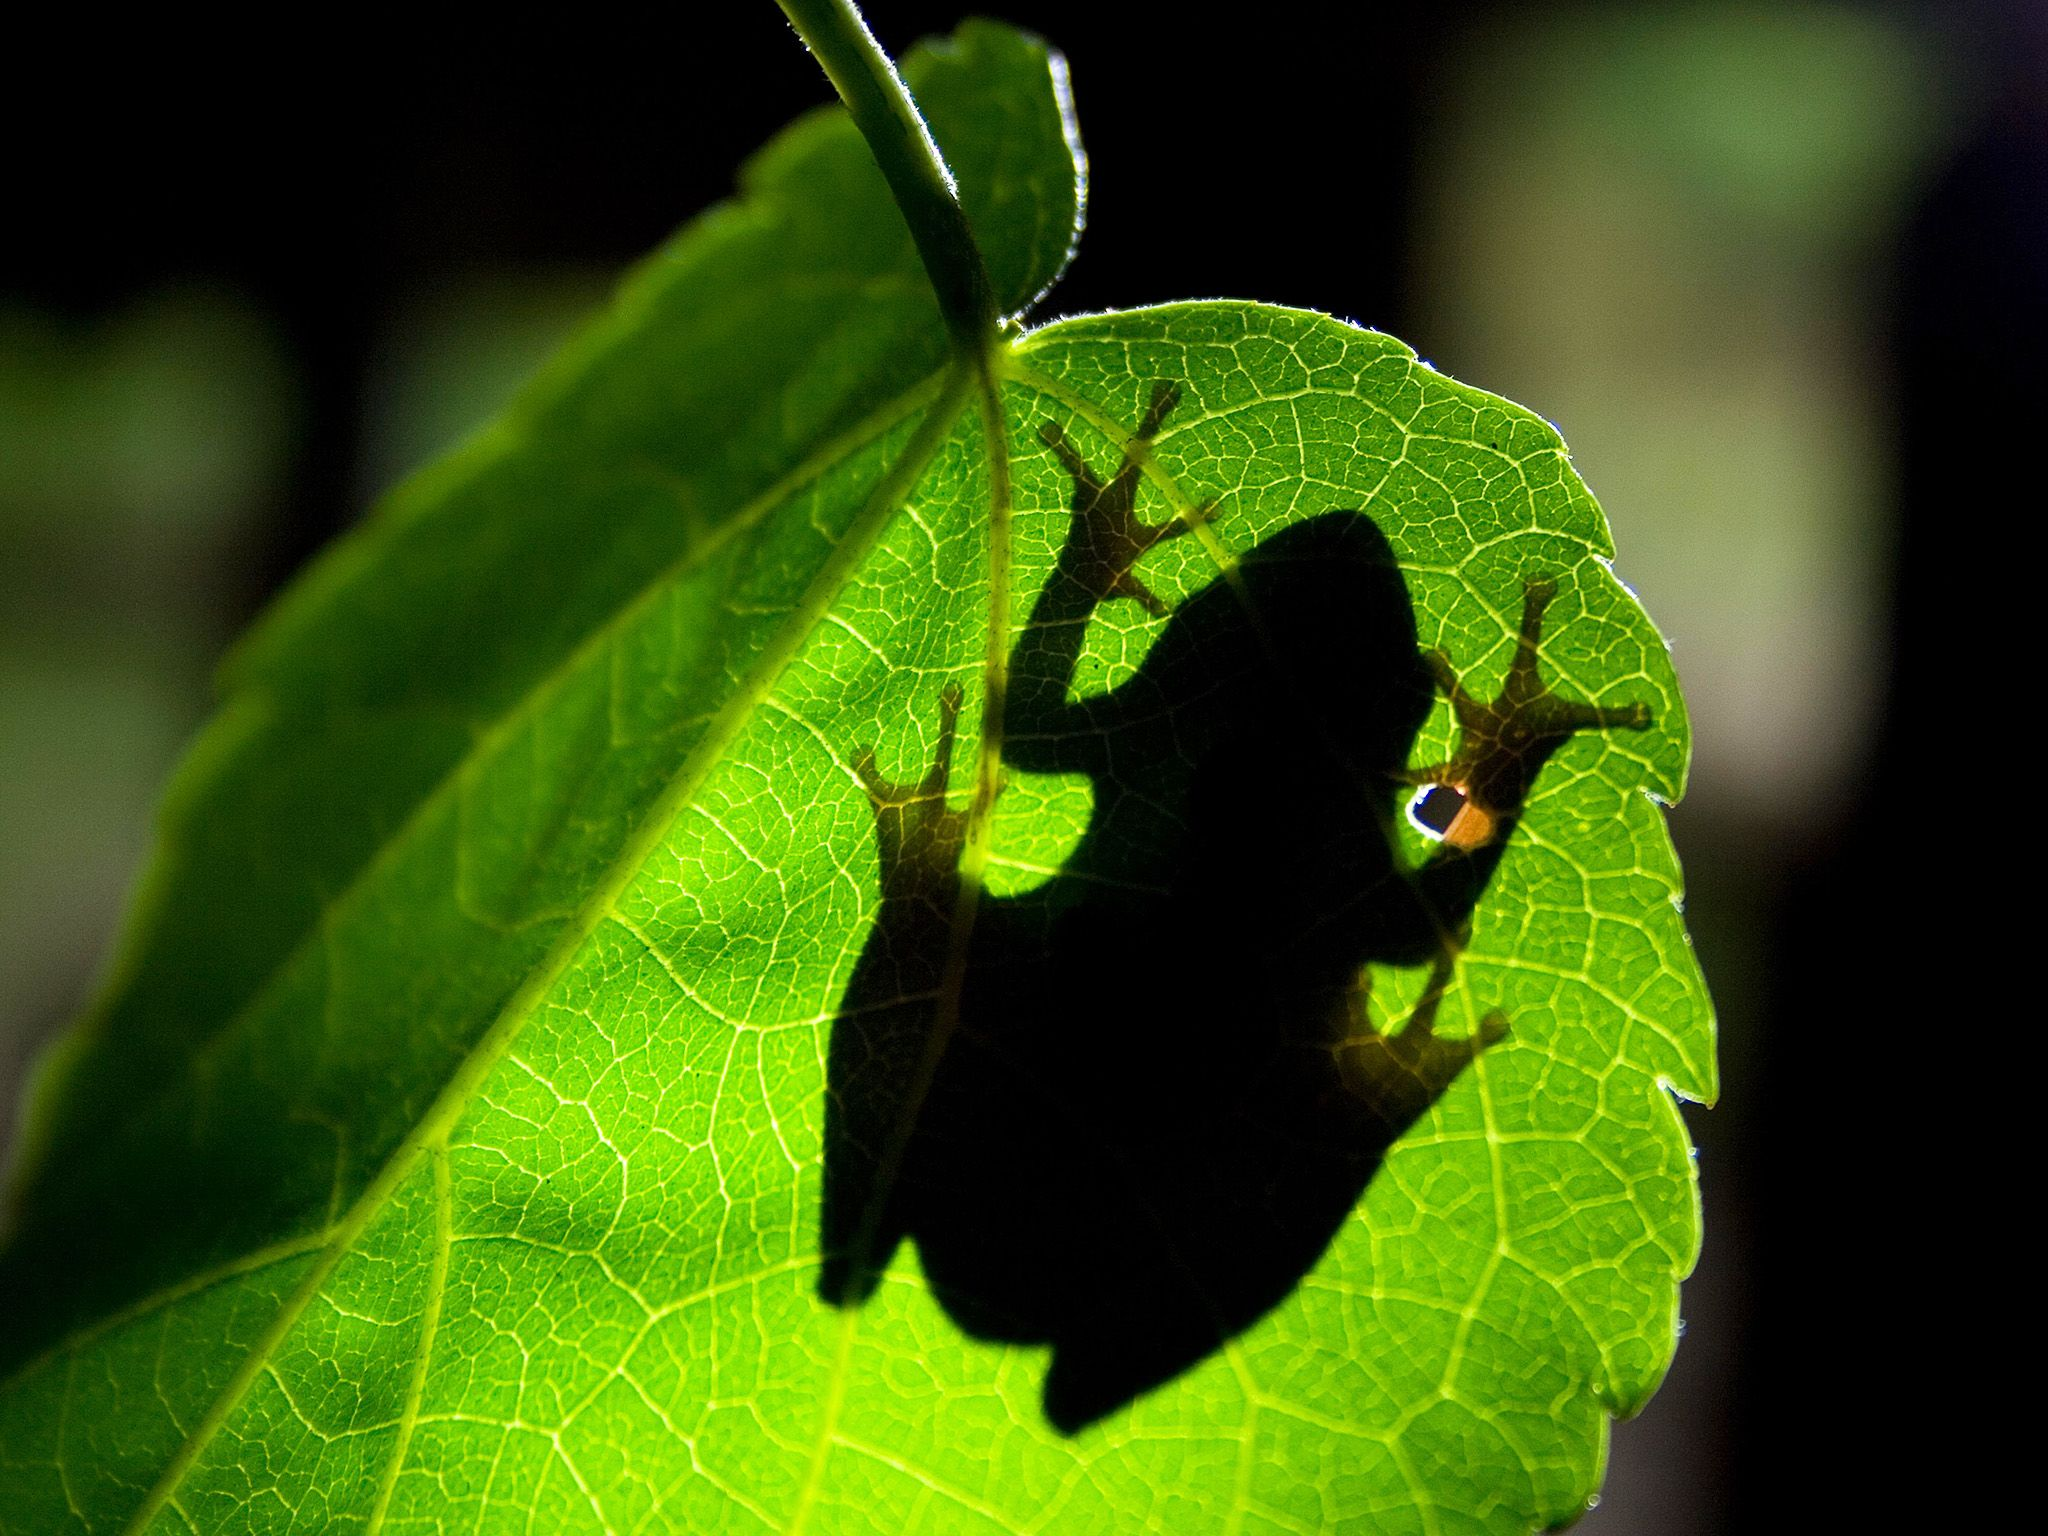 Underside shot looking up through leaf to silhouette of tree frog. Tree frogs distinctive... [Photo of the day - 五月 2015]